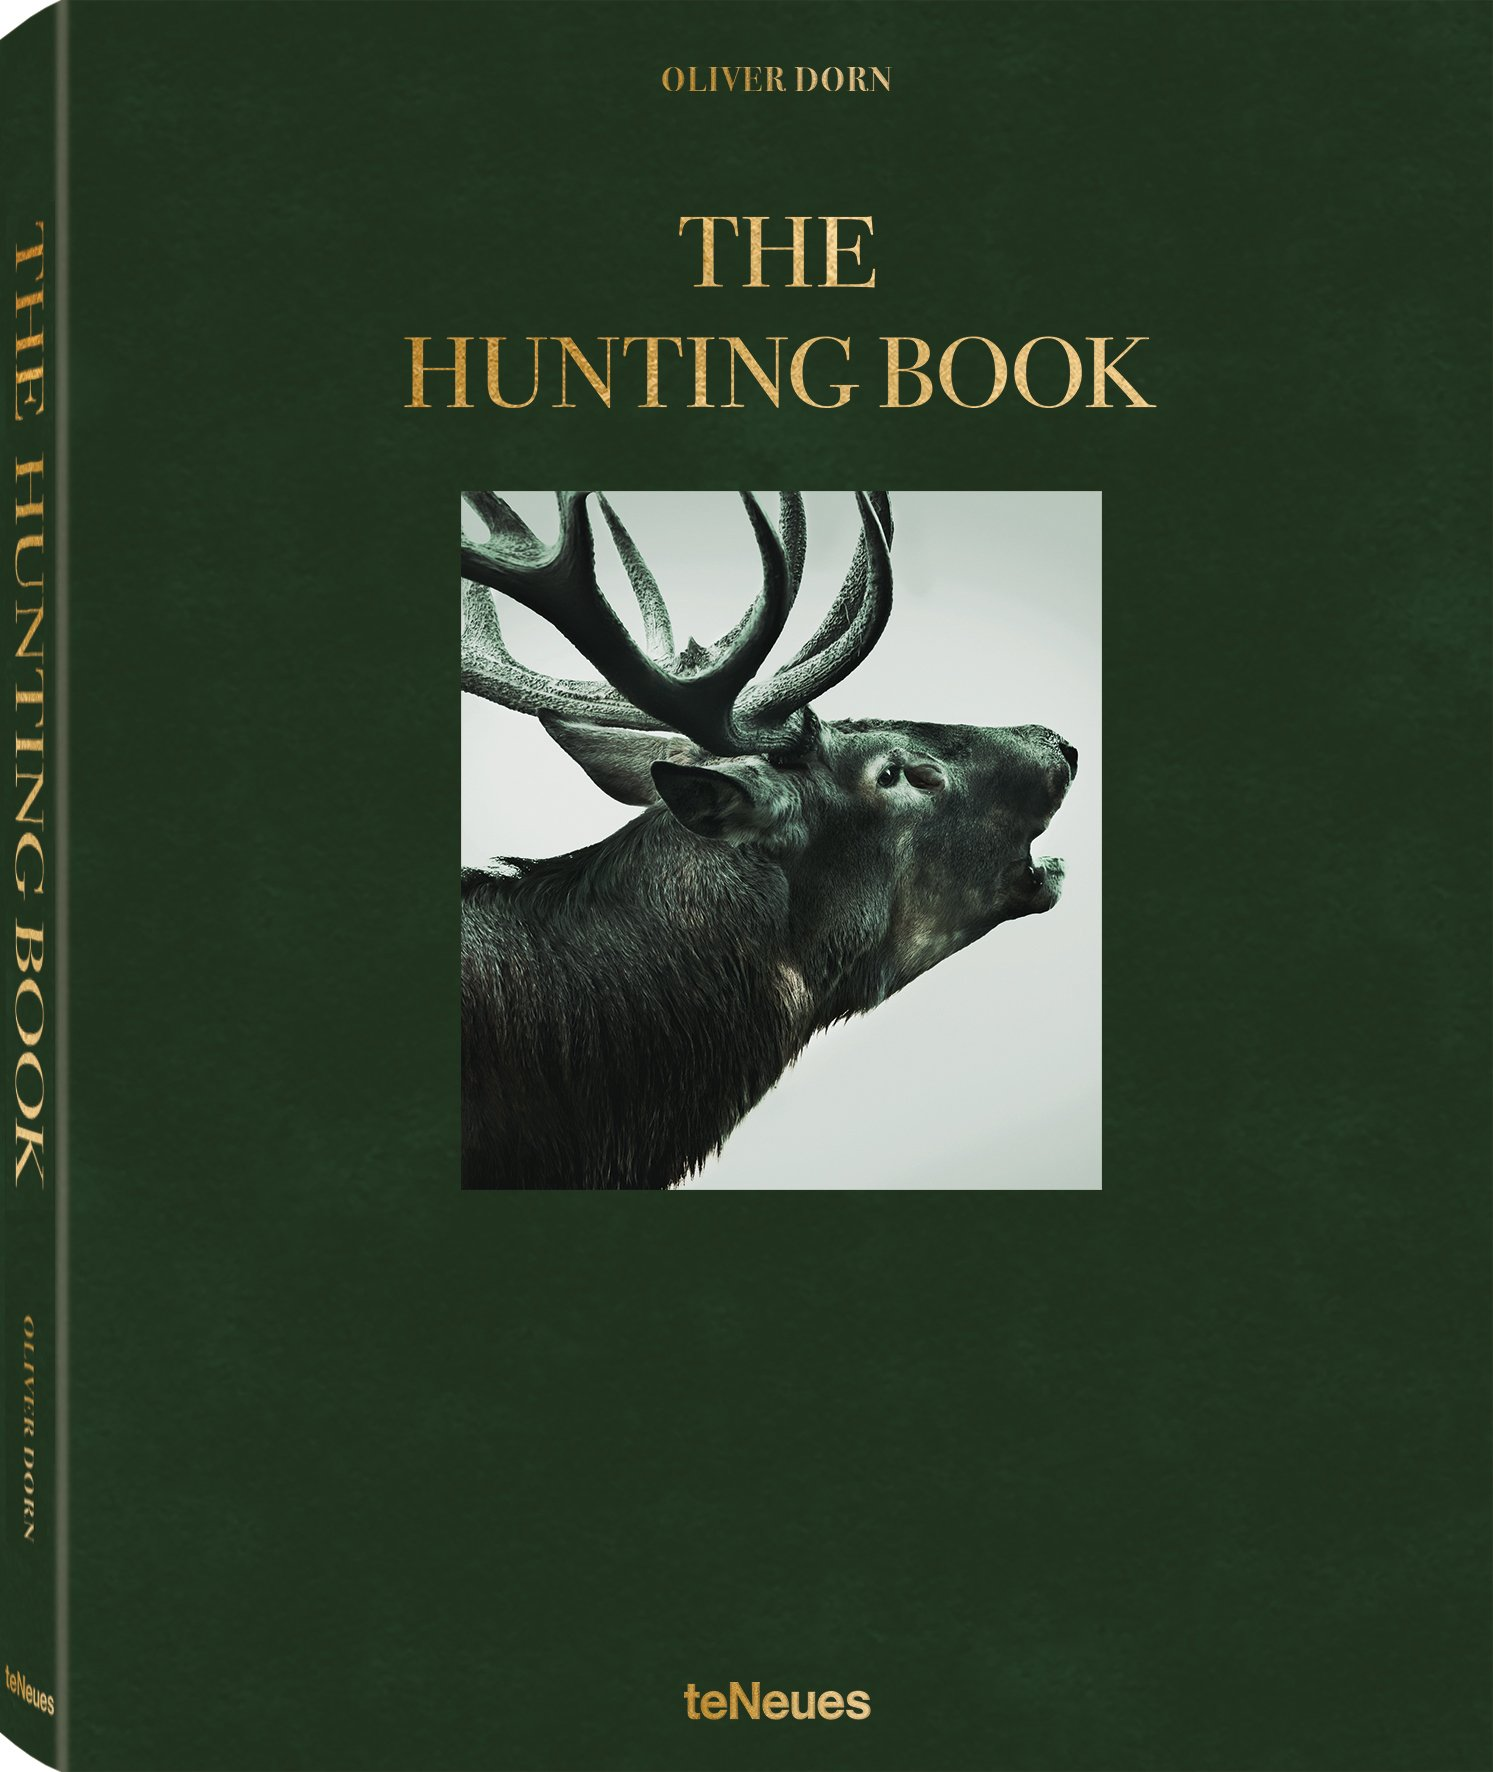 The Hunting Book, English version